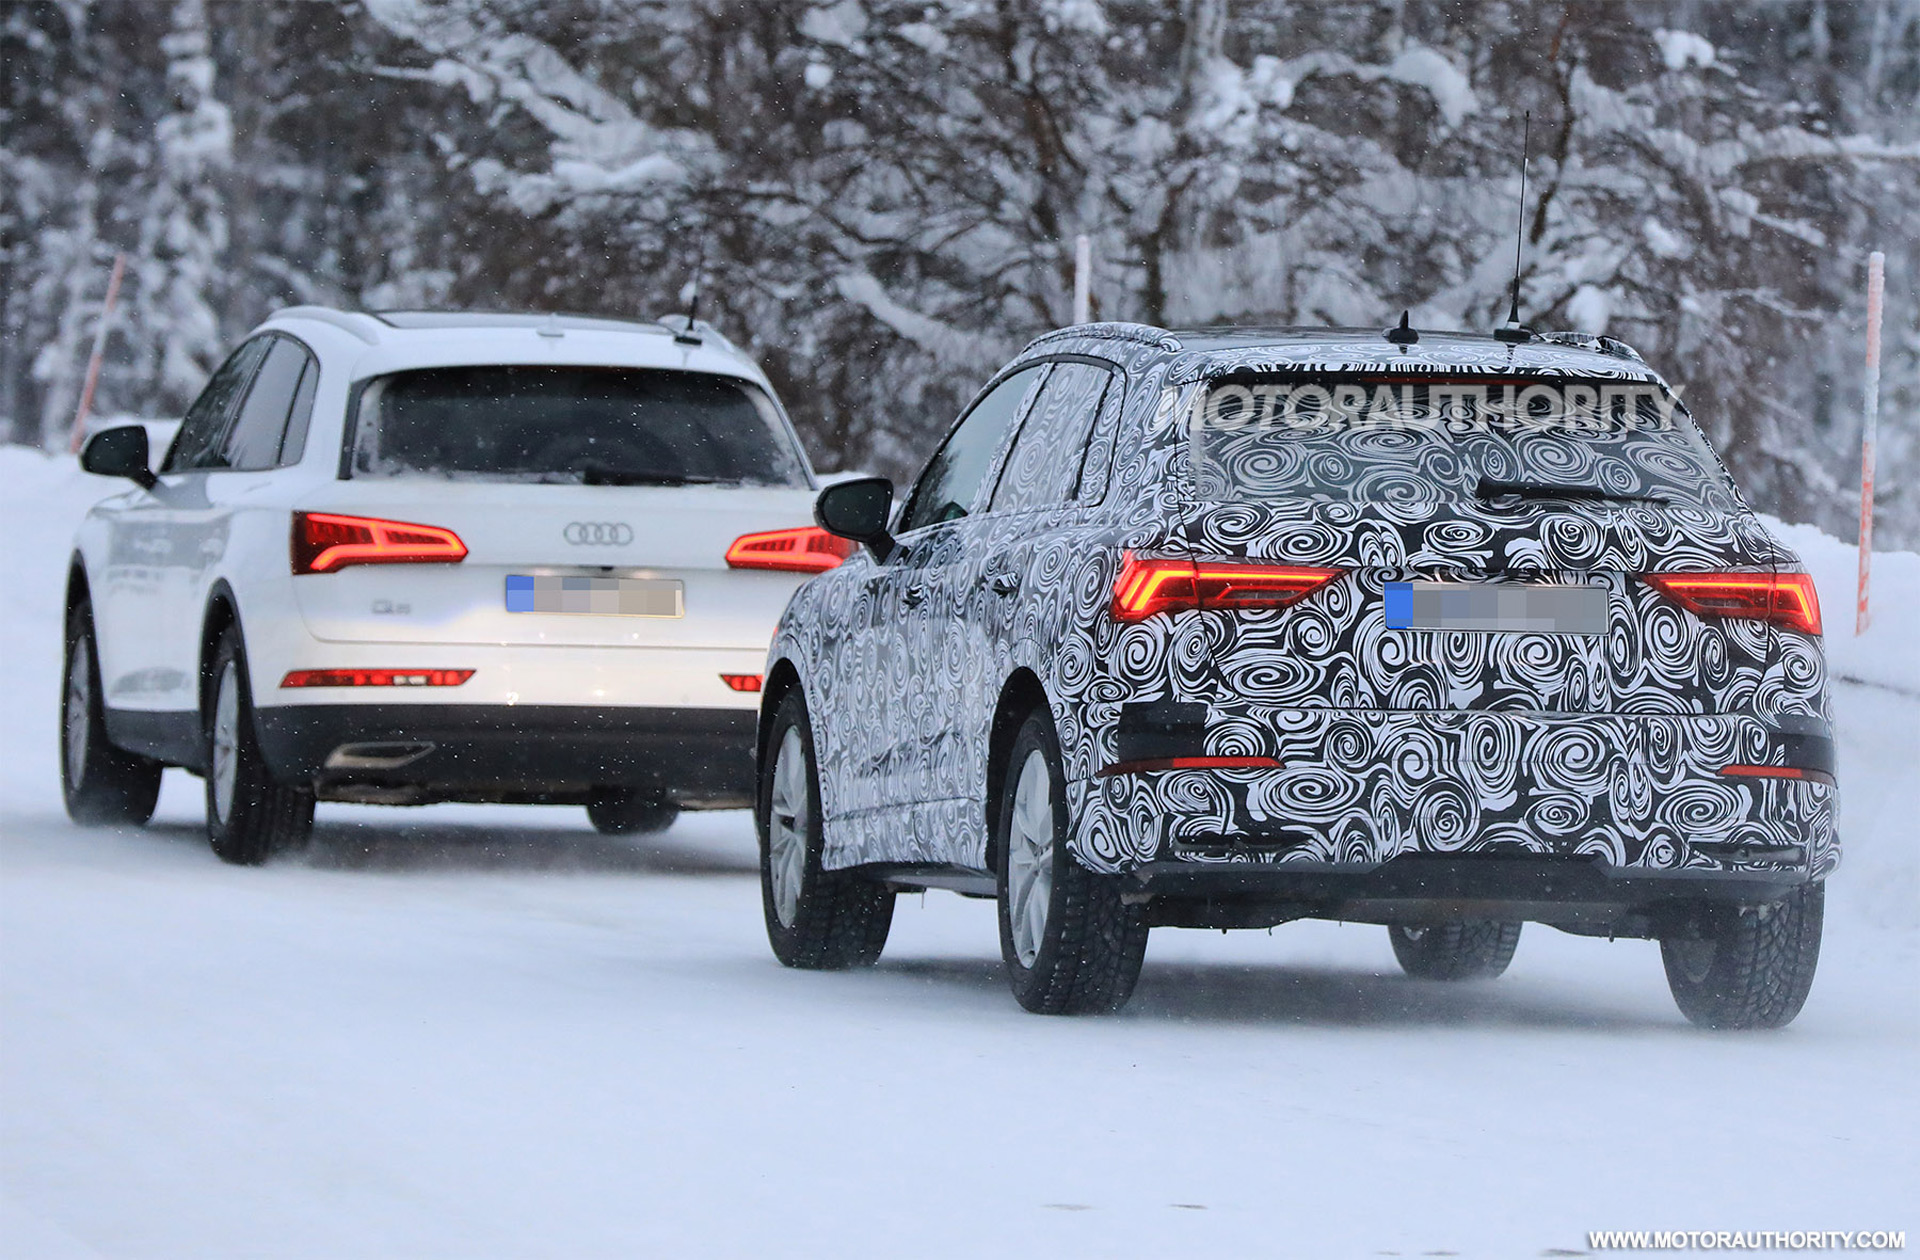 Audi Q3 Spy Shots Ferrari 488 Gto Leaked Details Mk8 Golf Production Date Car News Headlines